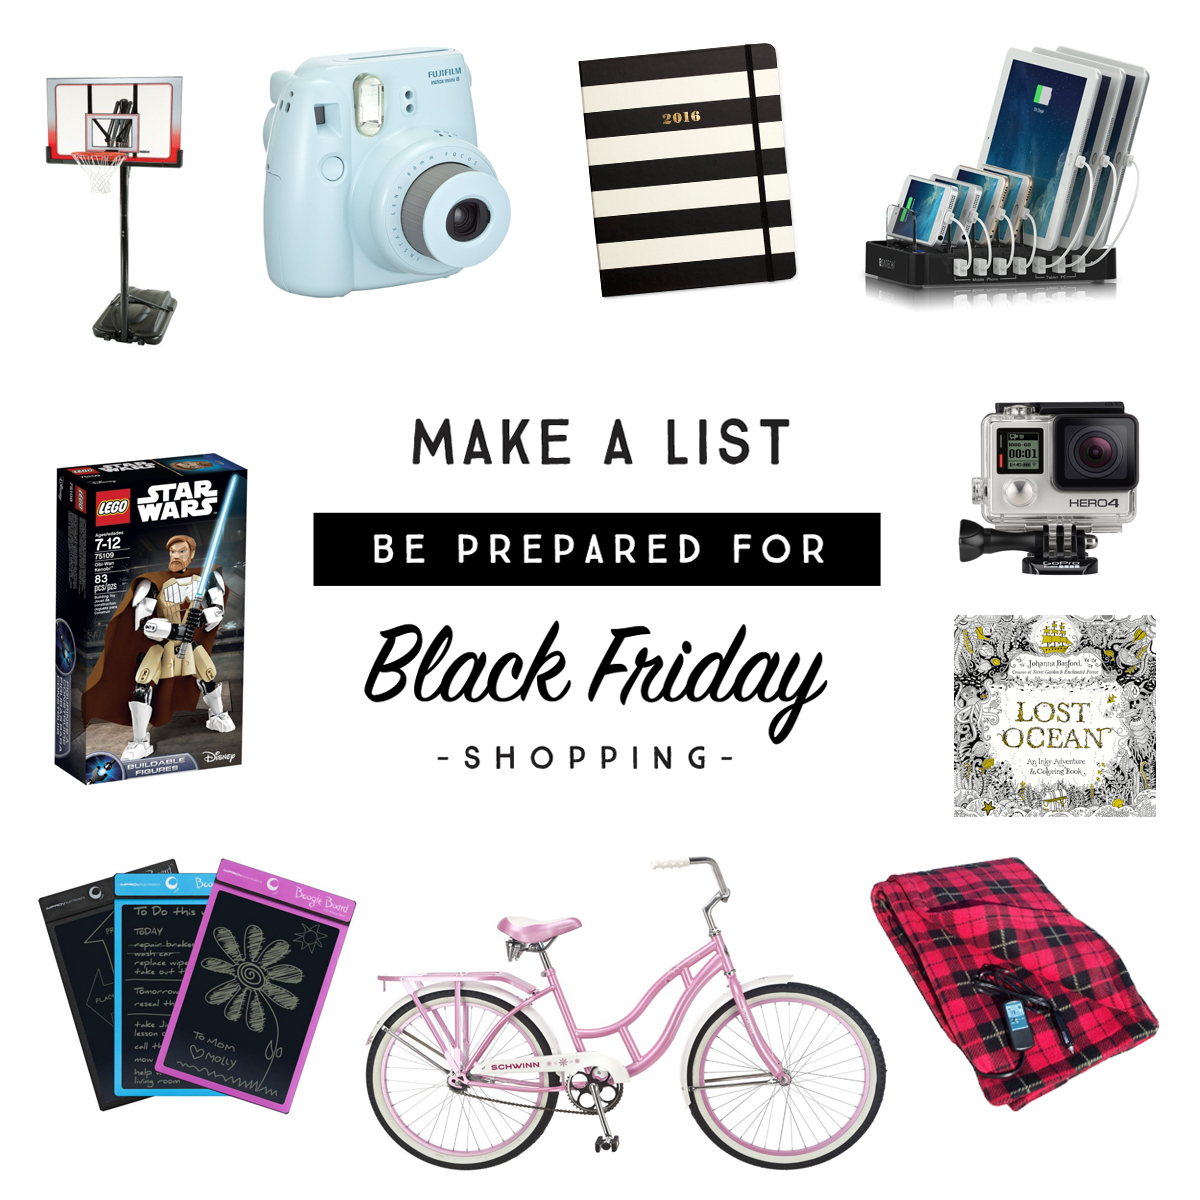 Make a List - Be Prepared for Black Friday Shopping